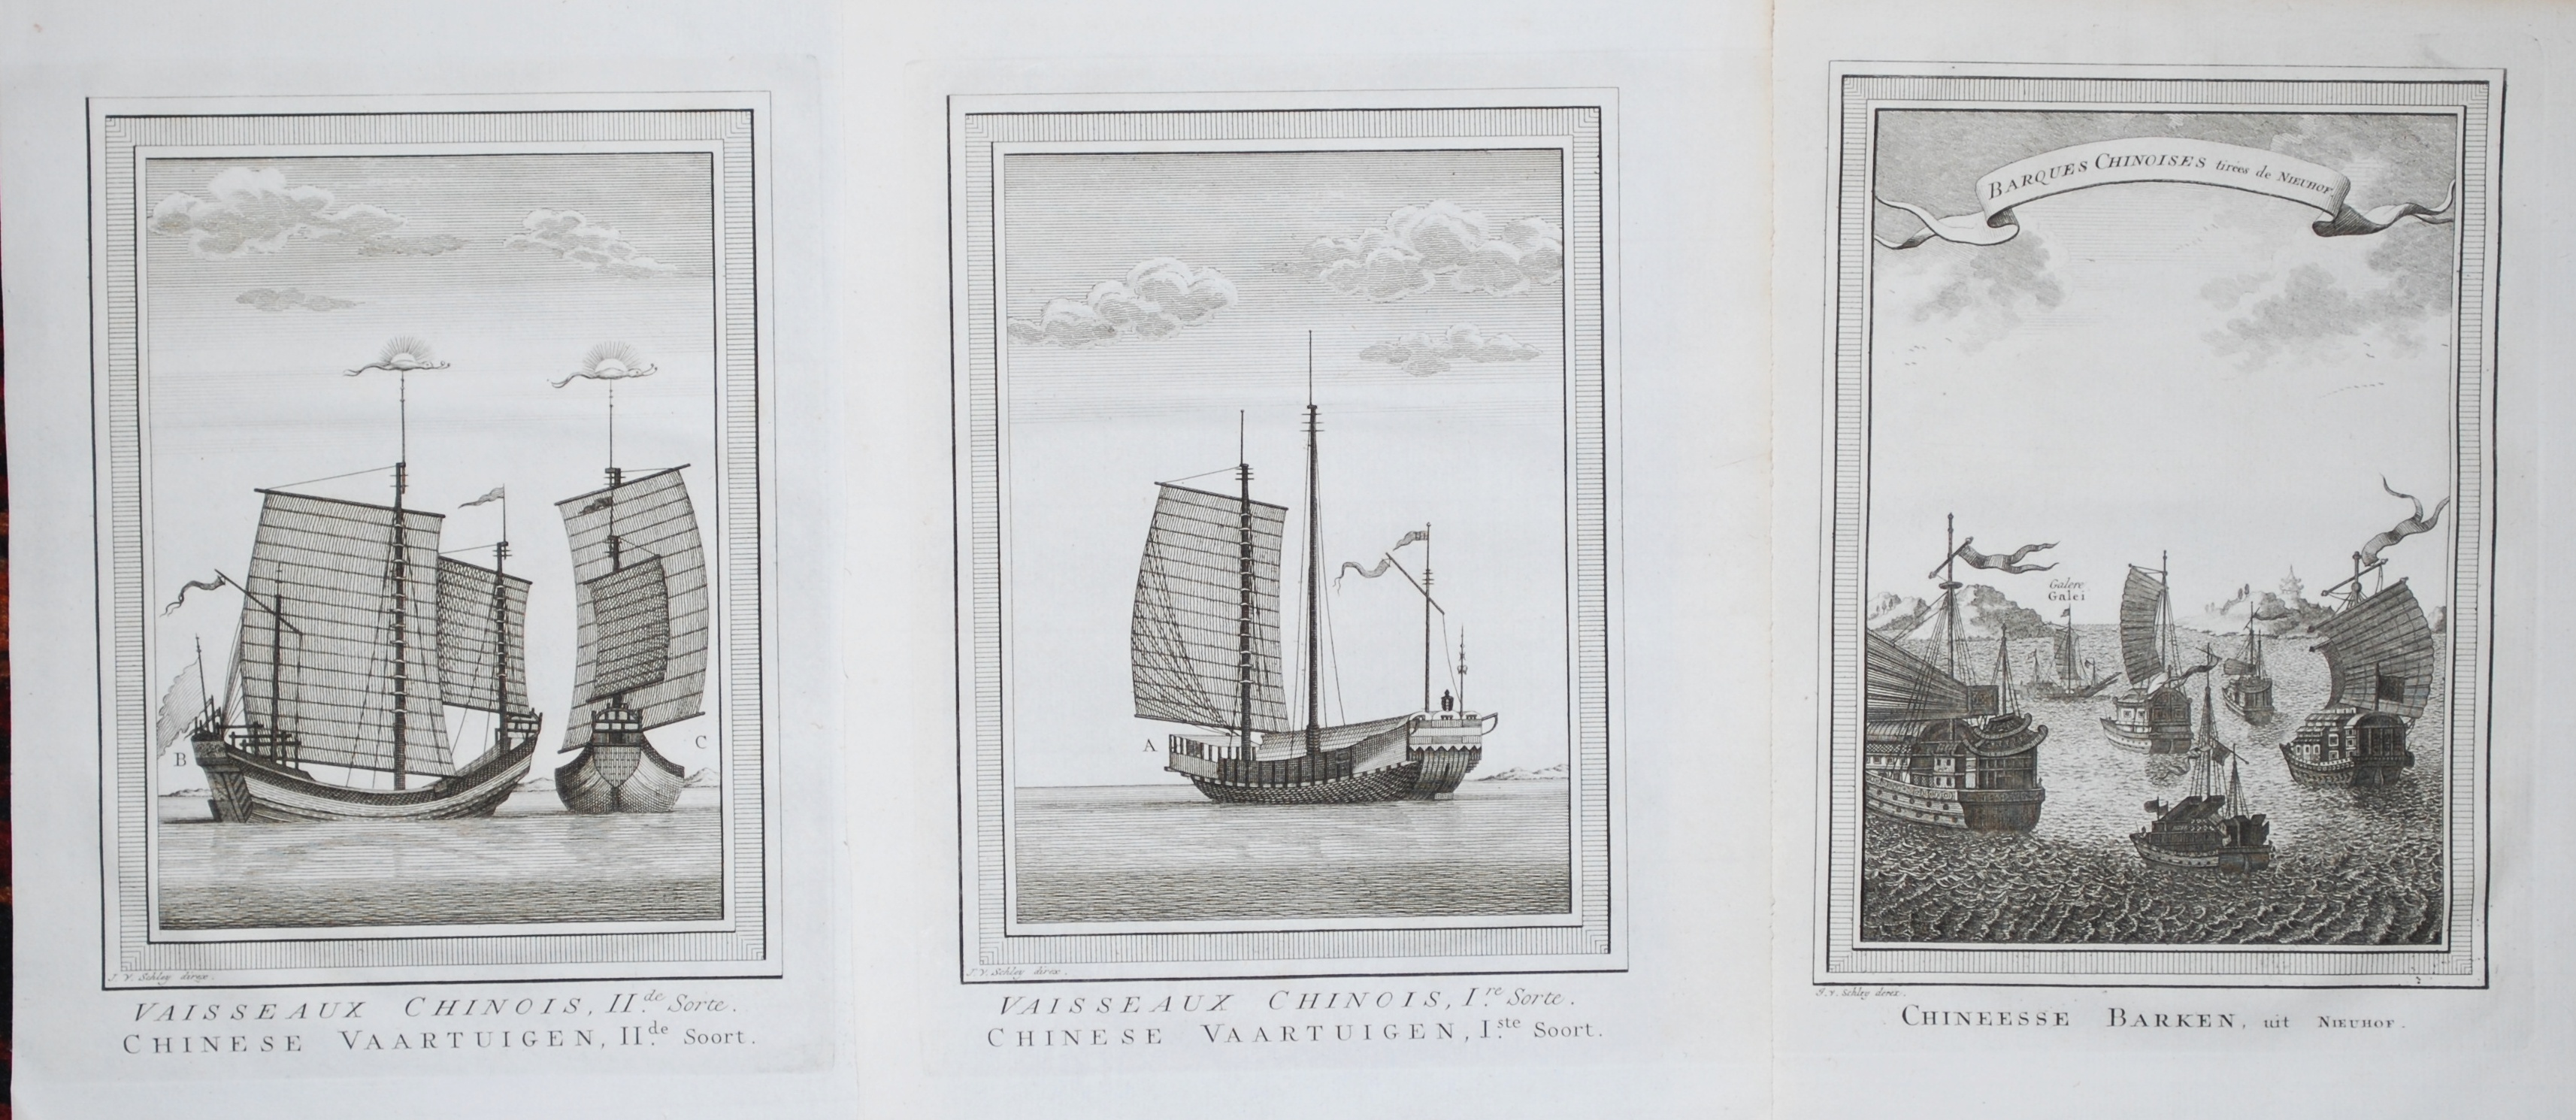 Vaisseaux / Barques Chinois (3 engravings)